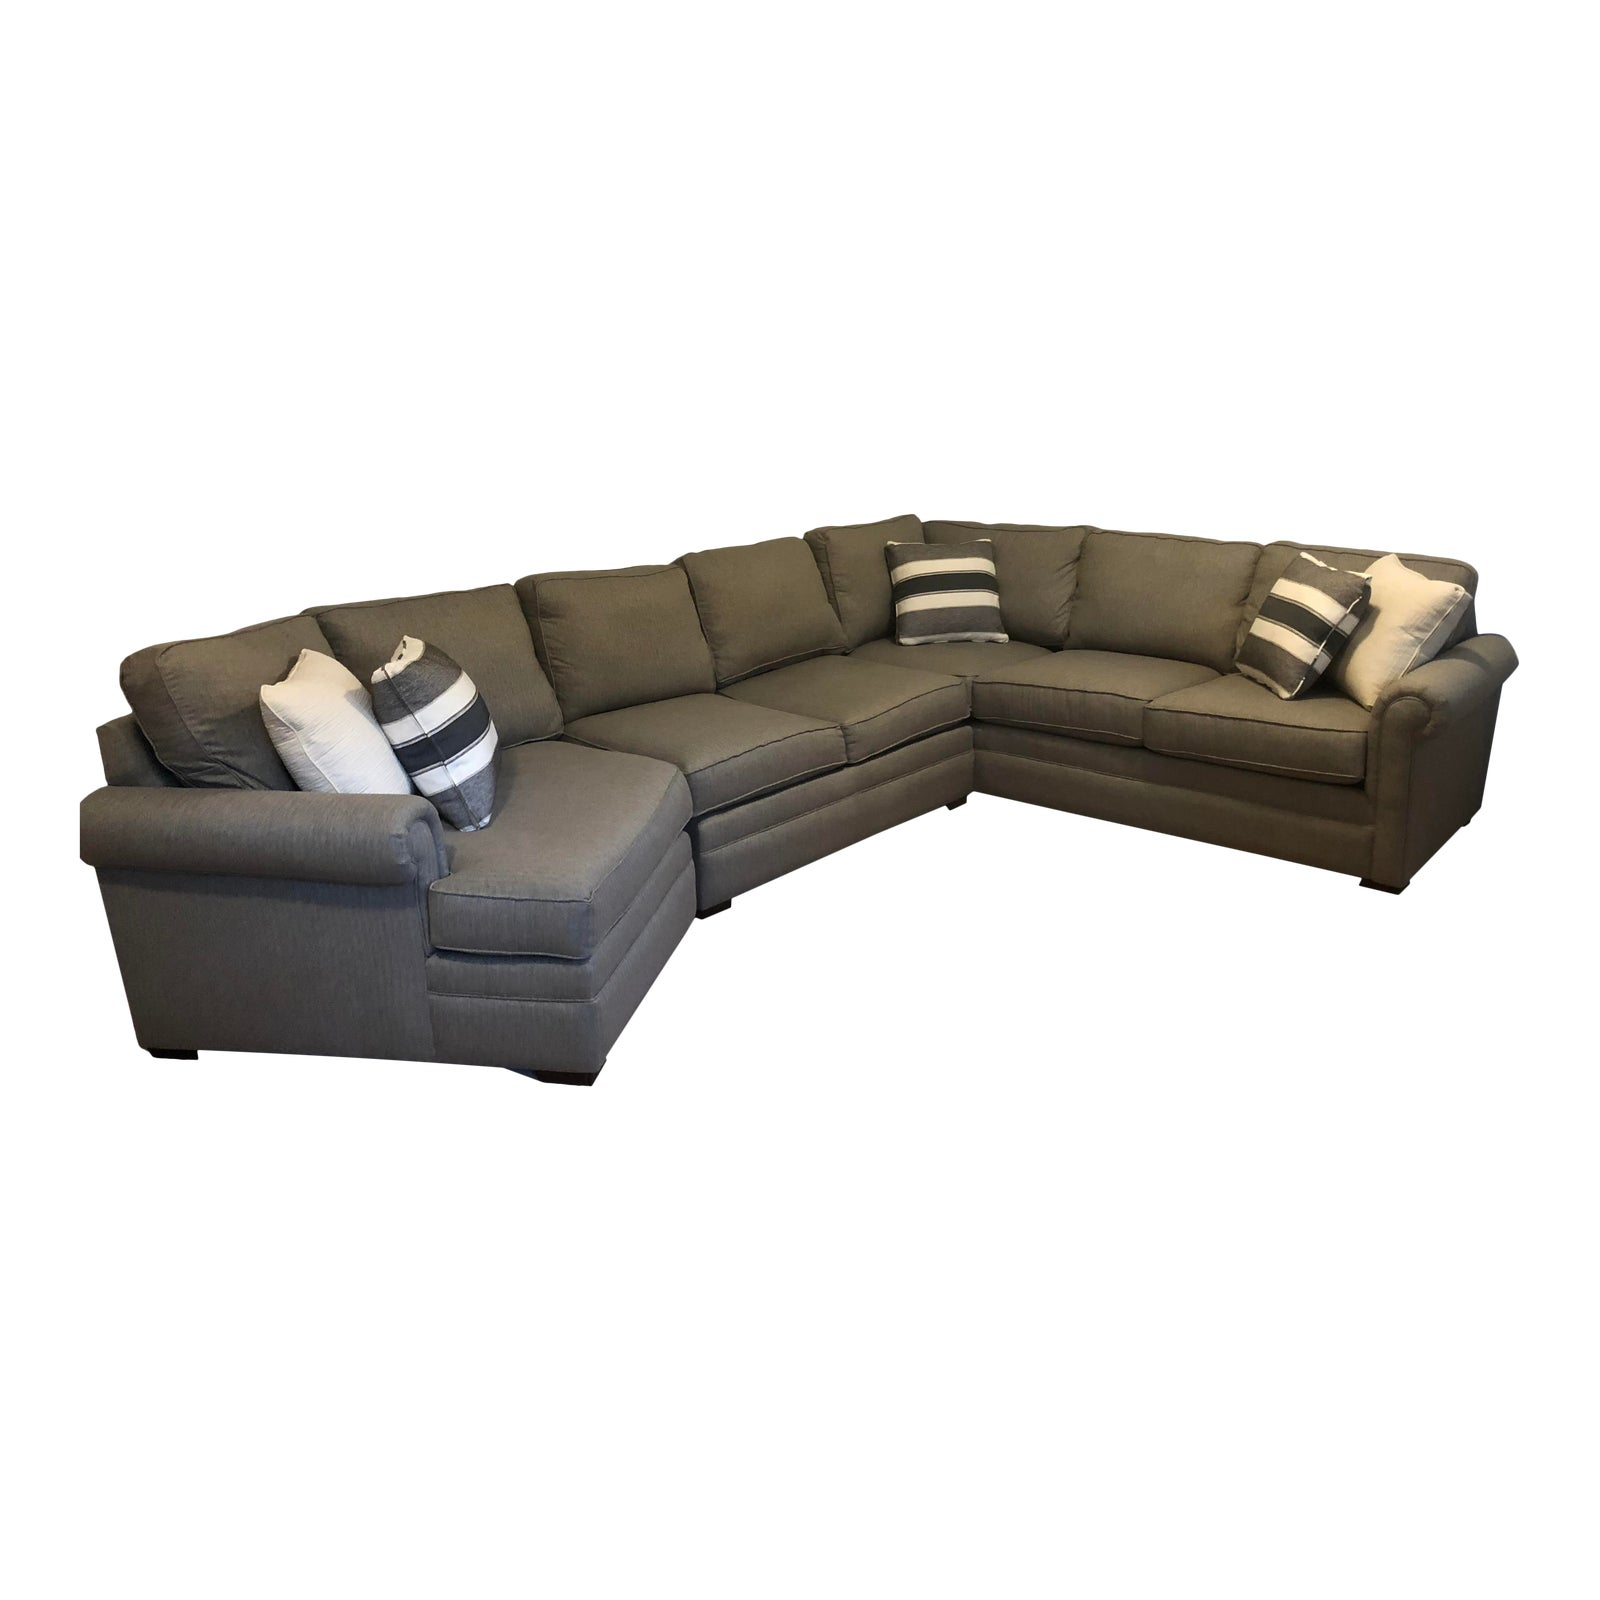 Stupendous Sectional Sofa With Love Nook Evergreenethics Interior Chair Design Evergreenethicsorg